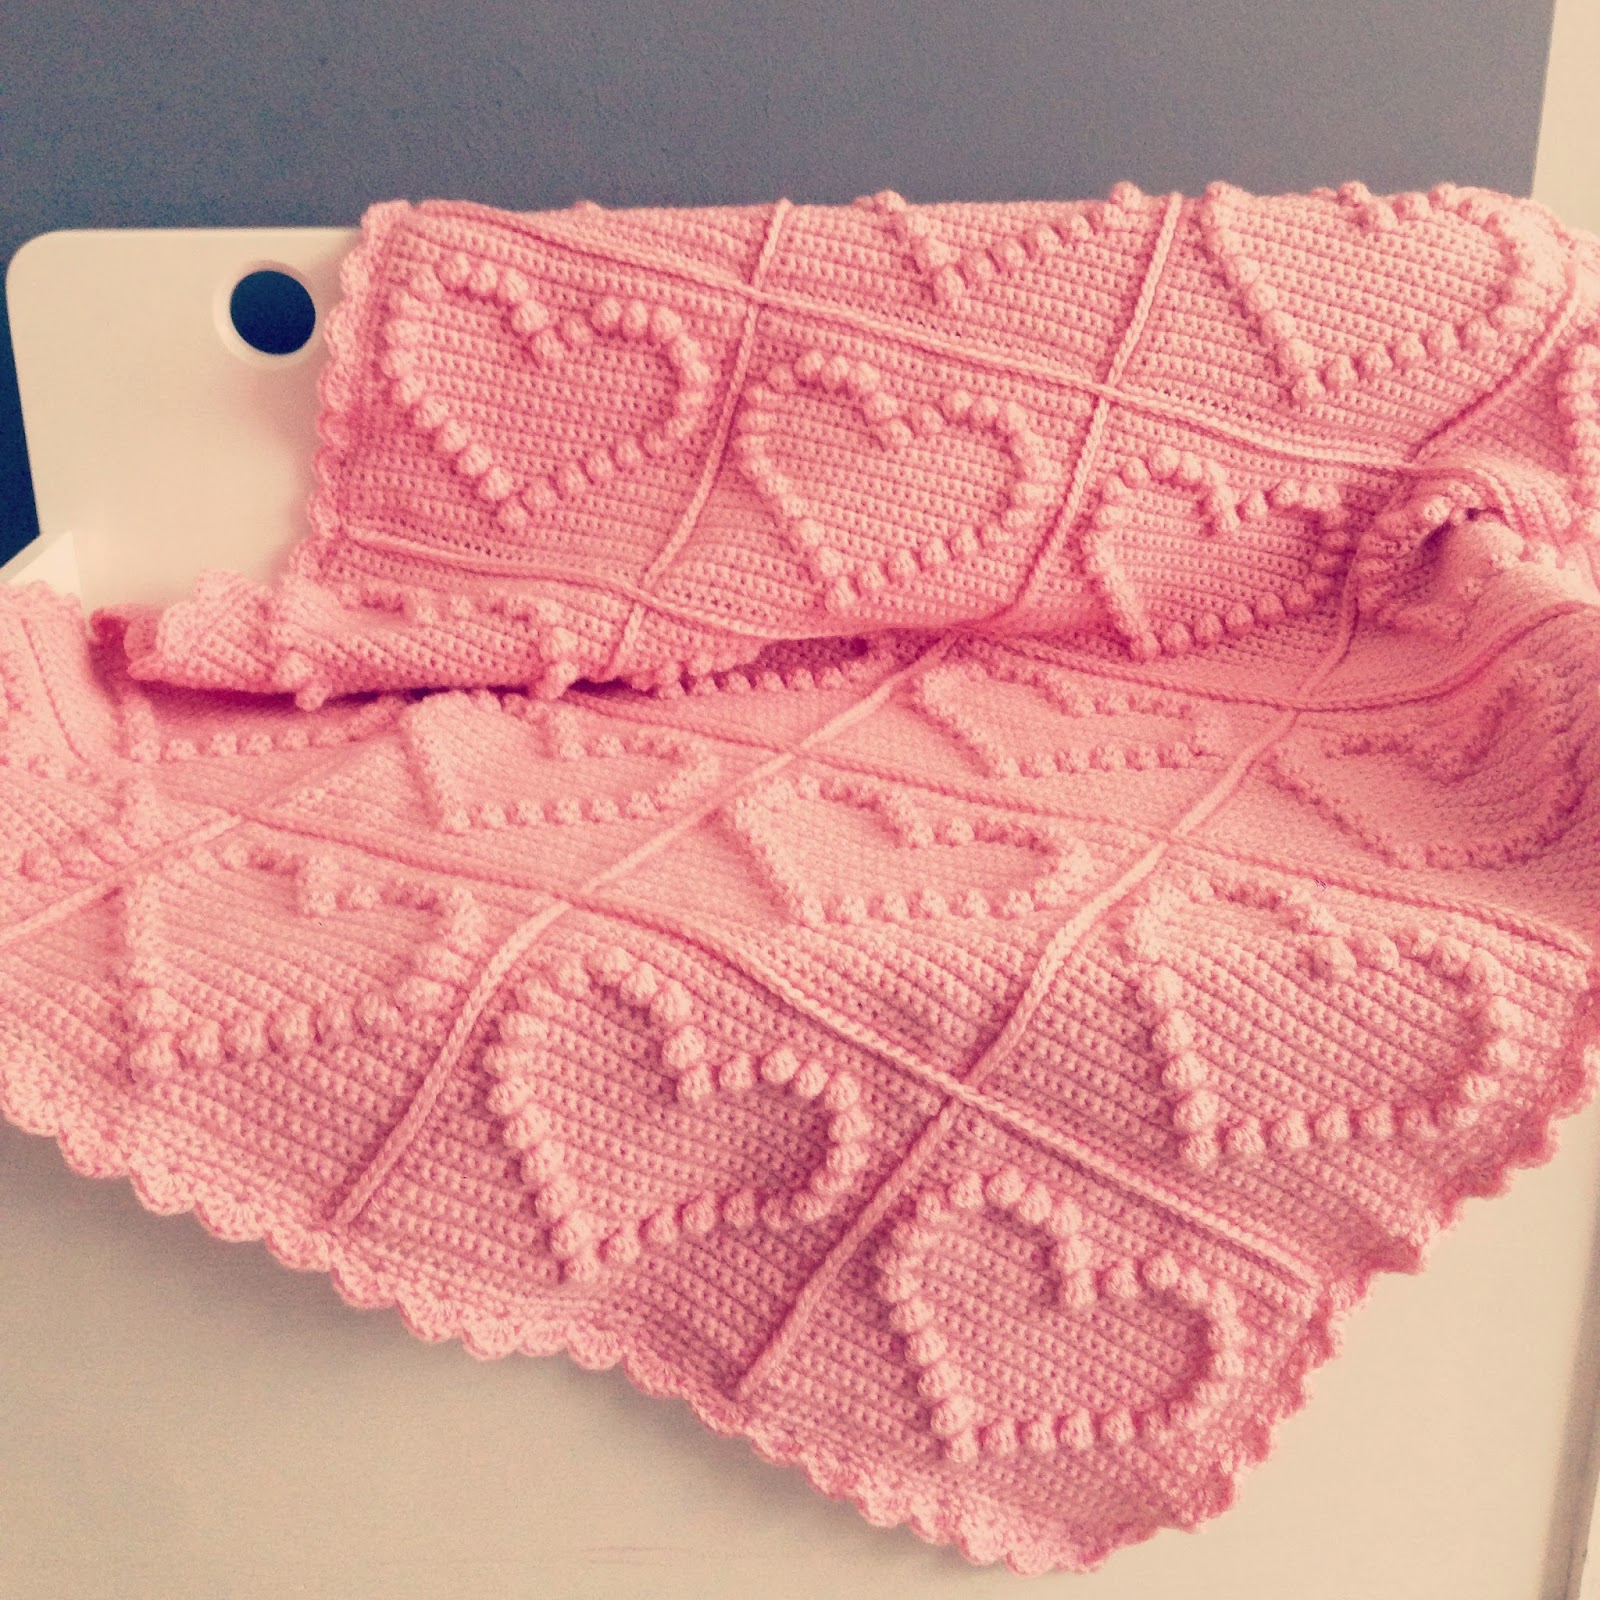 Knitted Socks Patterns Free : Angels handmade: Bobble heart blanket + vertaald patroon